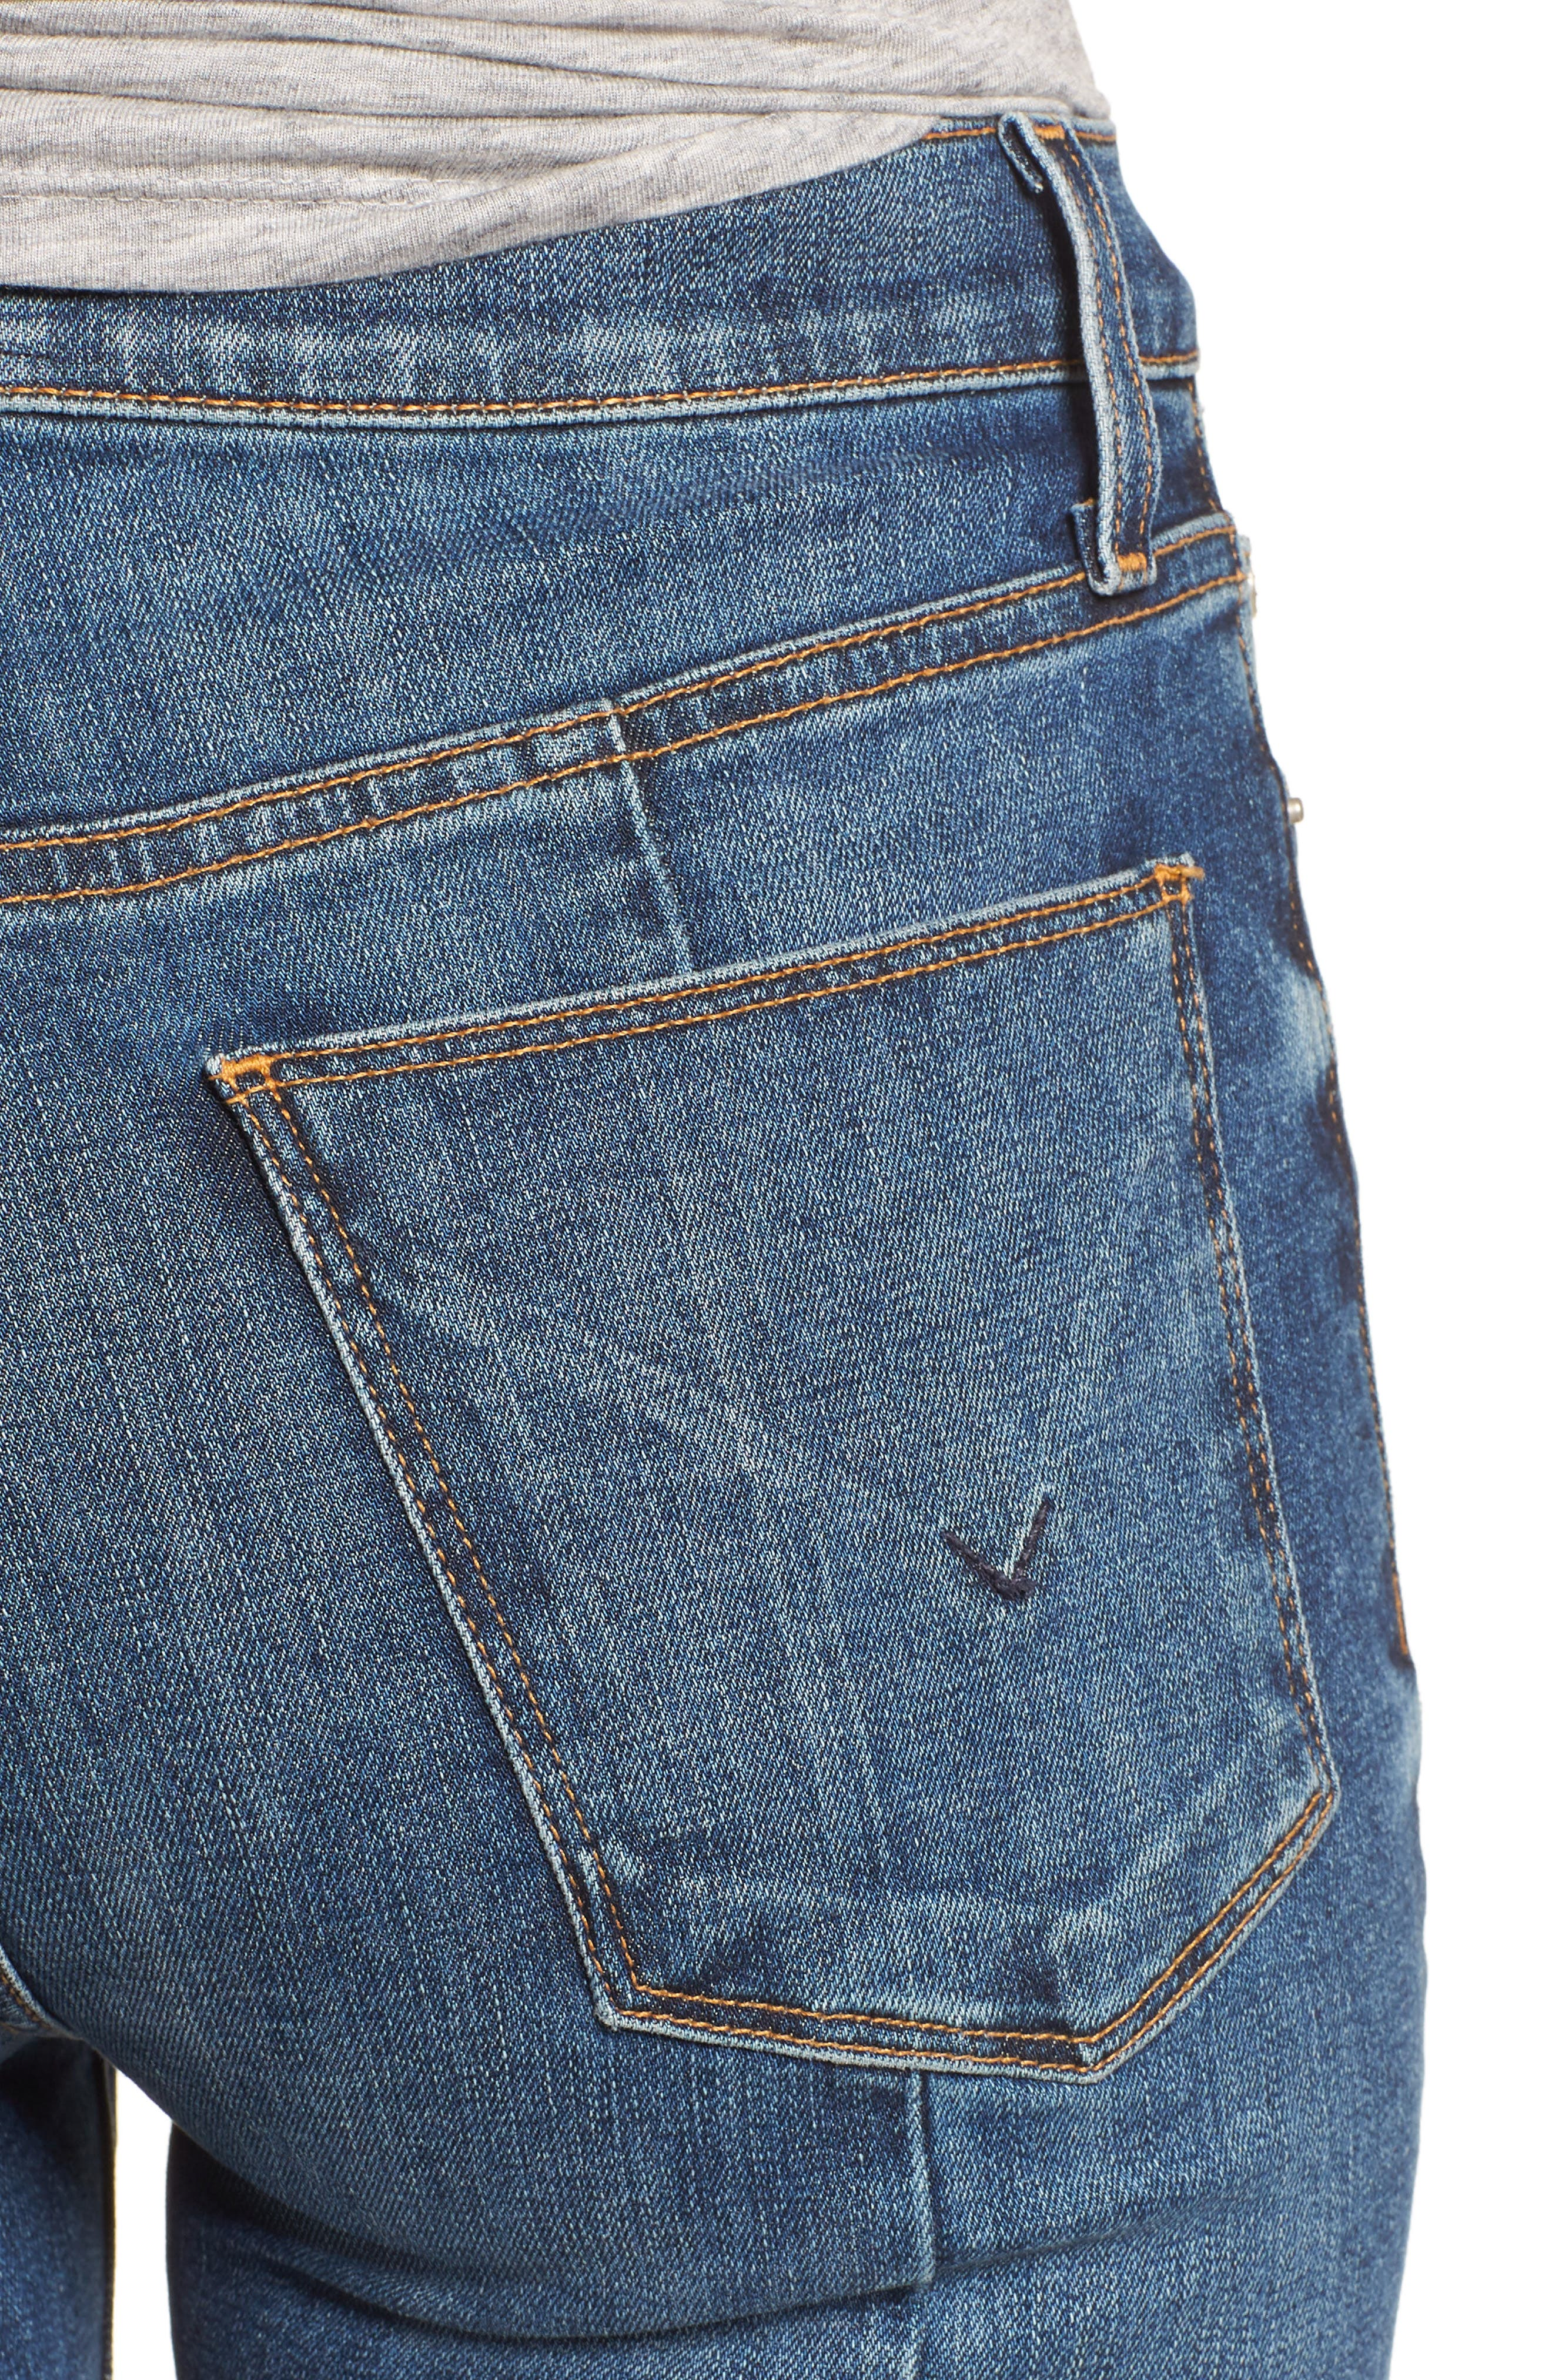 Holly High Waist Crop Flare Jeans,                             Alternate thumbnail 4, color,                             LOSS CONTROL